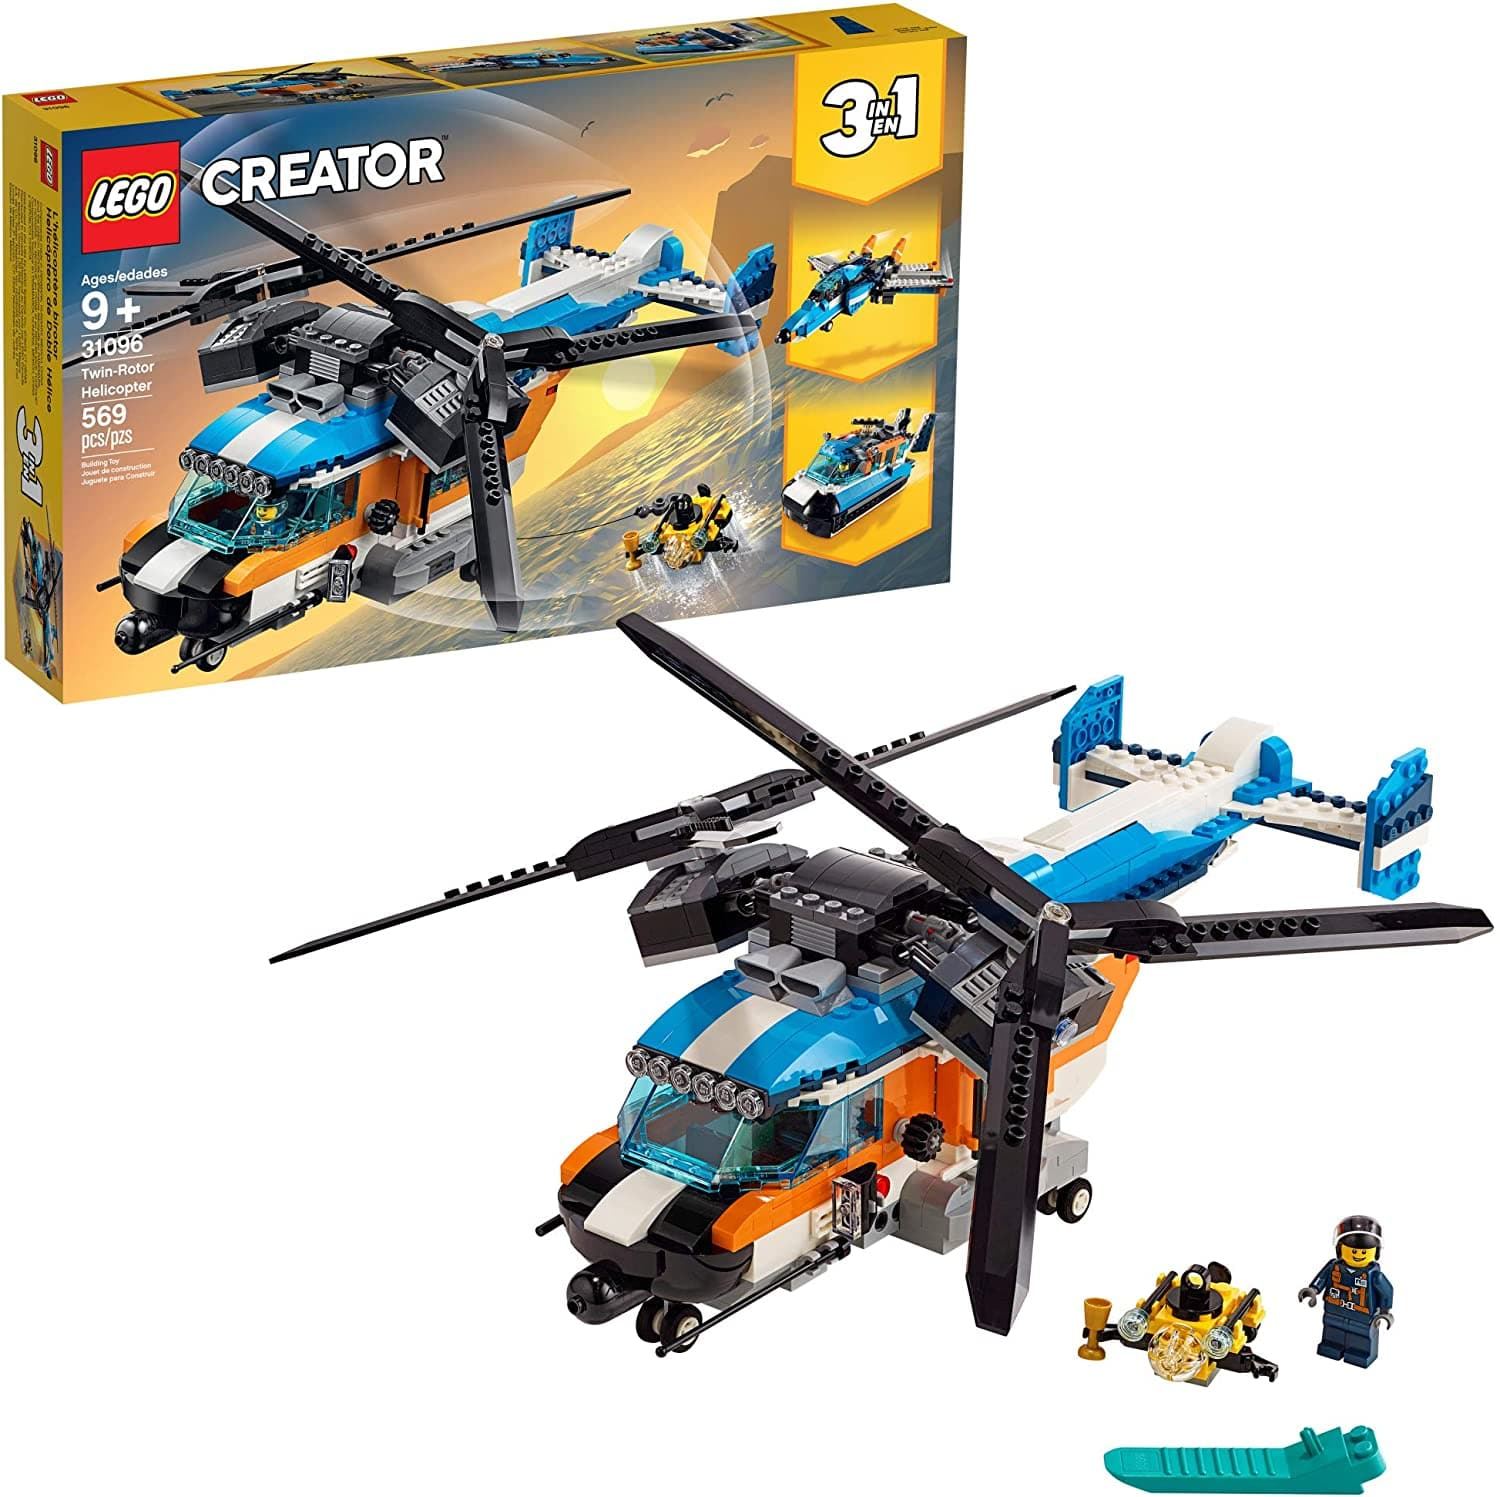 569-Piece LEGO Creator 3-In-1 Twin Rotor Helicopter Building Set $39.97 + Free Shipping via Amazon/Walmart